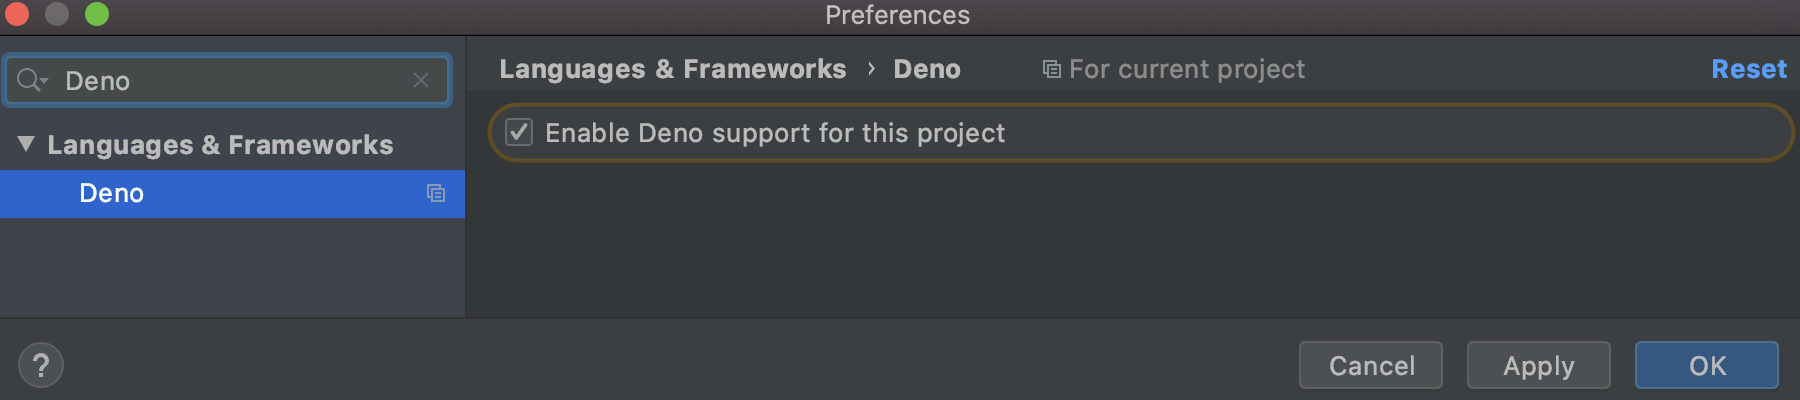 deno-checkbox-preferences